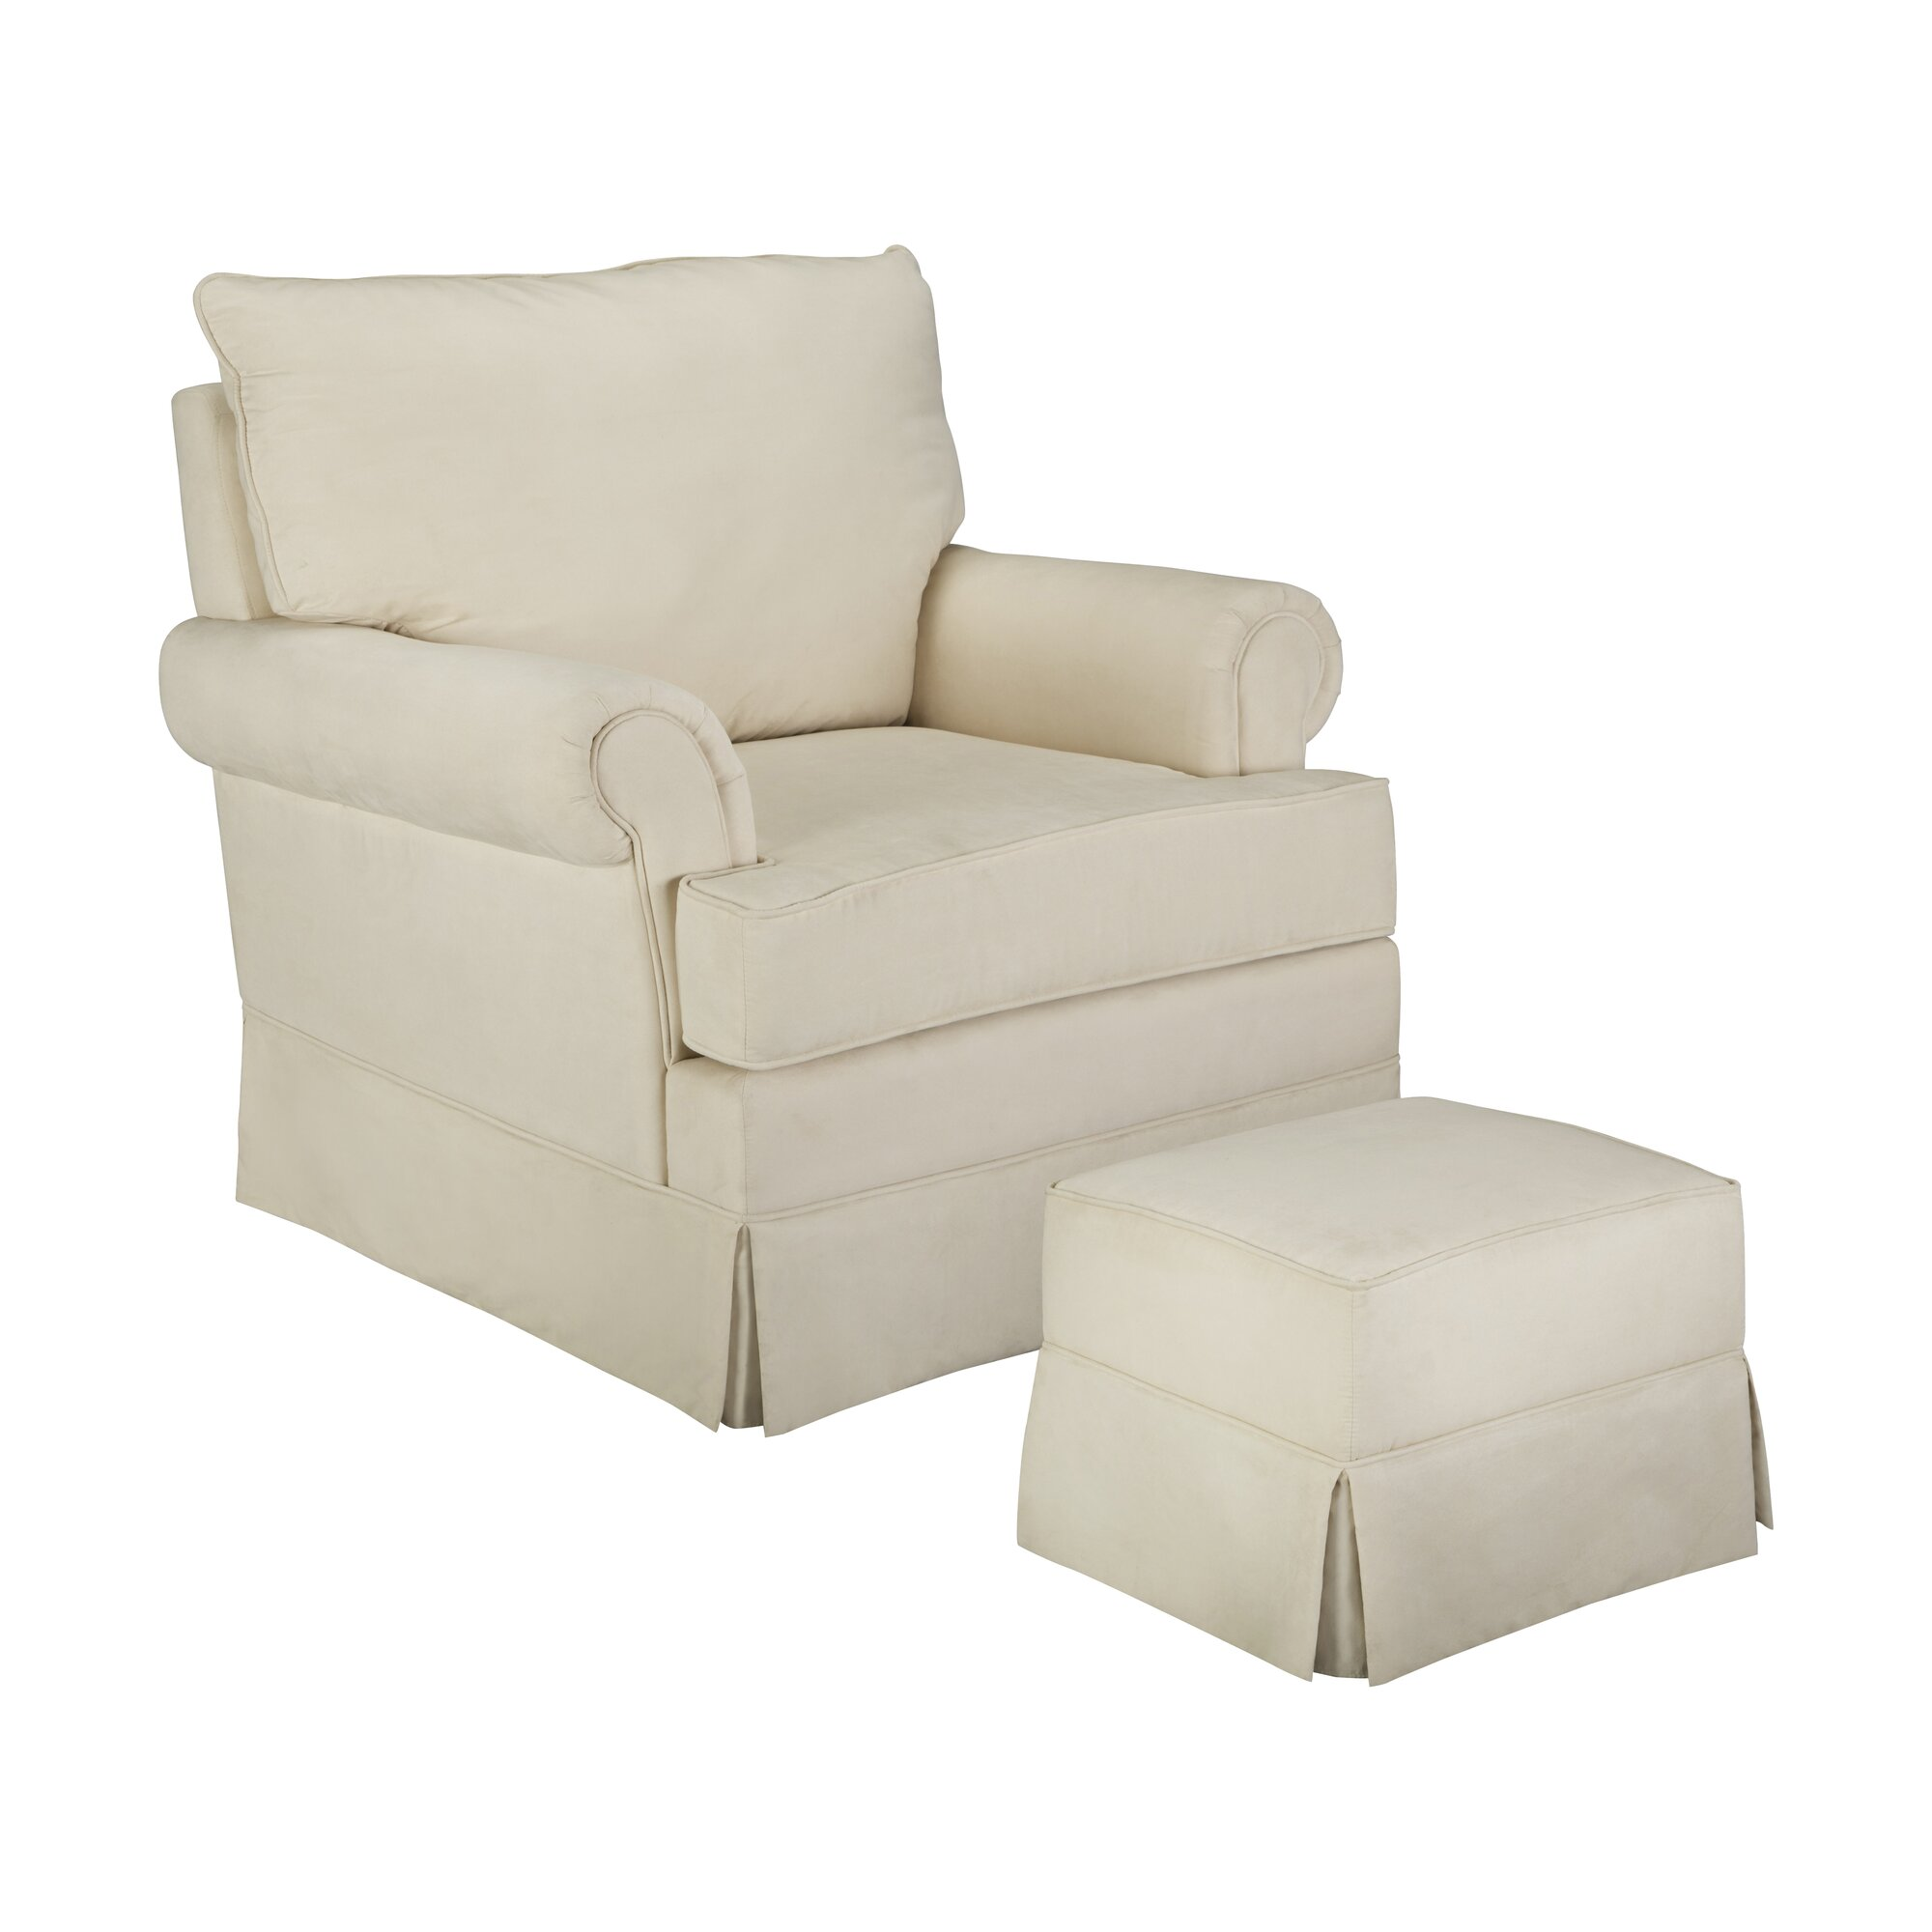 thomasvillekids grand royale swivel glider and ottoman reviews wayfair. Black Bedroom Furniture Sets. Home Design Ideas